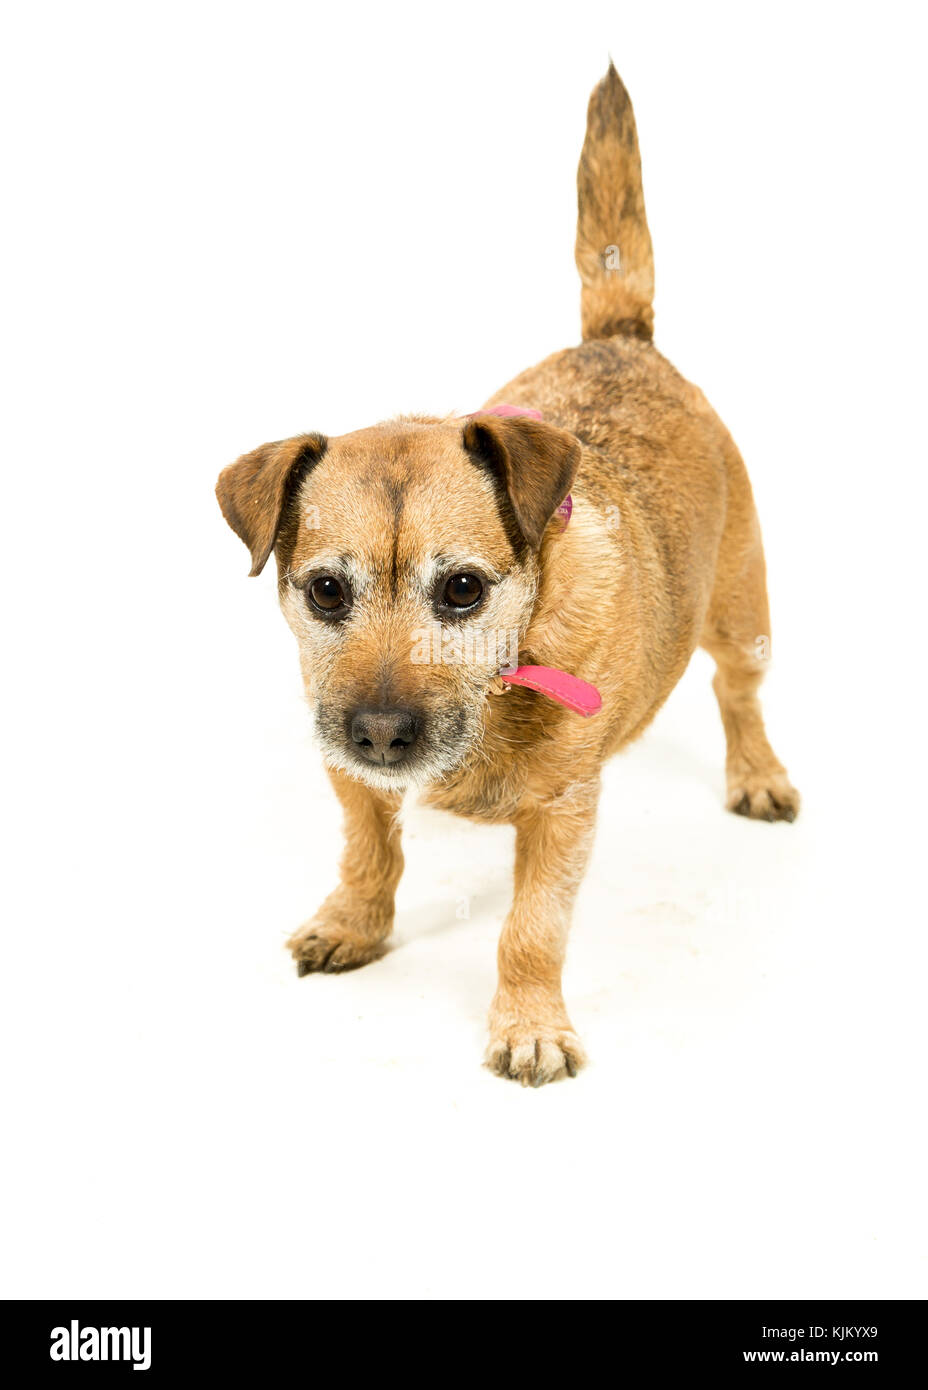 Jack Russell-Border Terrier crossbreed on White Background - Stock Image